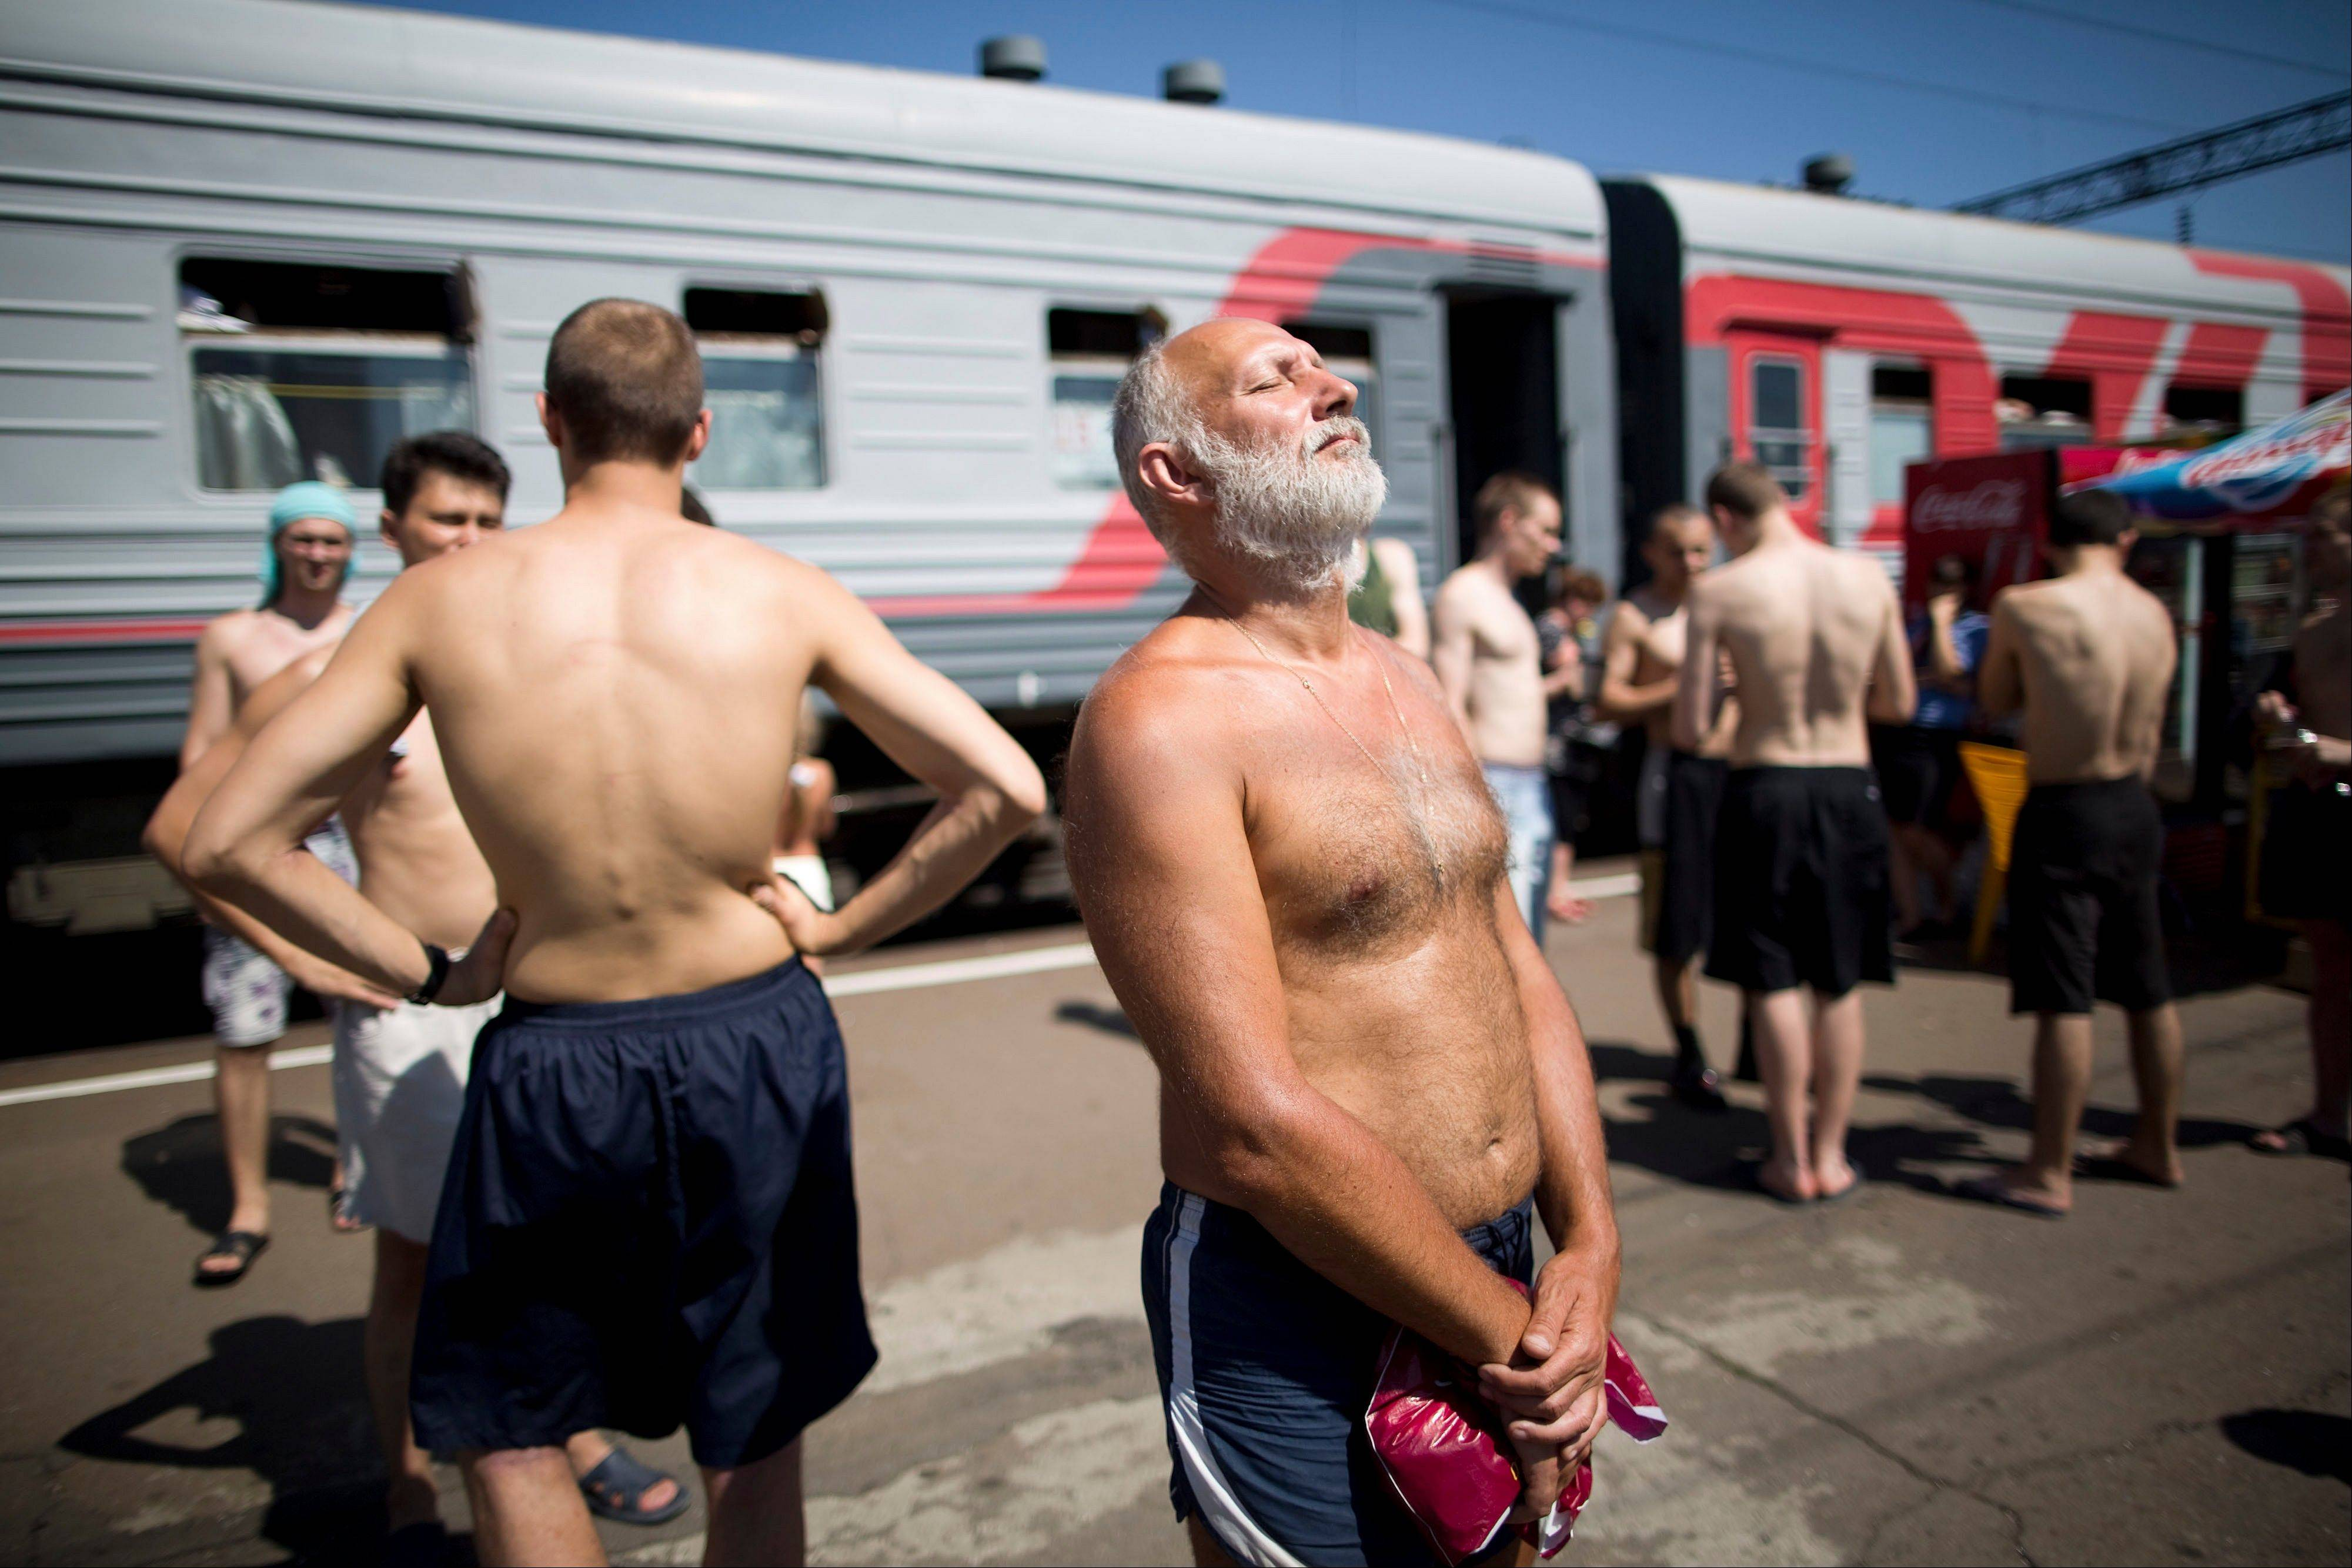 Passengers from the Novorossiysk-Moscow train, operated by OAO Russian Railways, sunbathe on a platform at Liski station in Voronezh region, Russia, on Sunday, July 15, 2012. Russia's government plans to sell stakes in its rail monopoly, grain trader, biggest shipper, nanotechnology holding and largest banks within 18 months as it loosens its grip on an economy dominated by commodity exports.